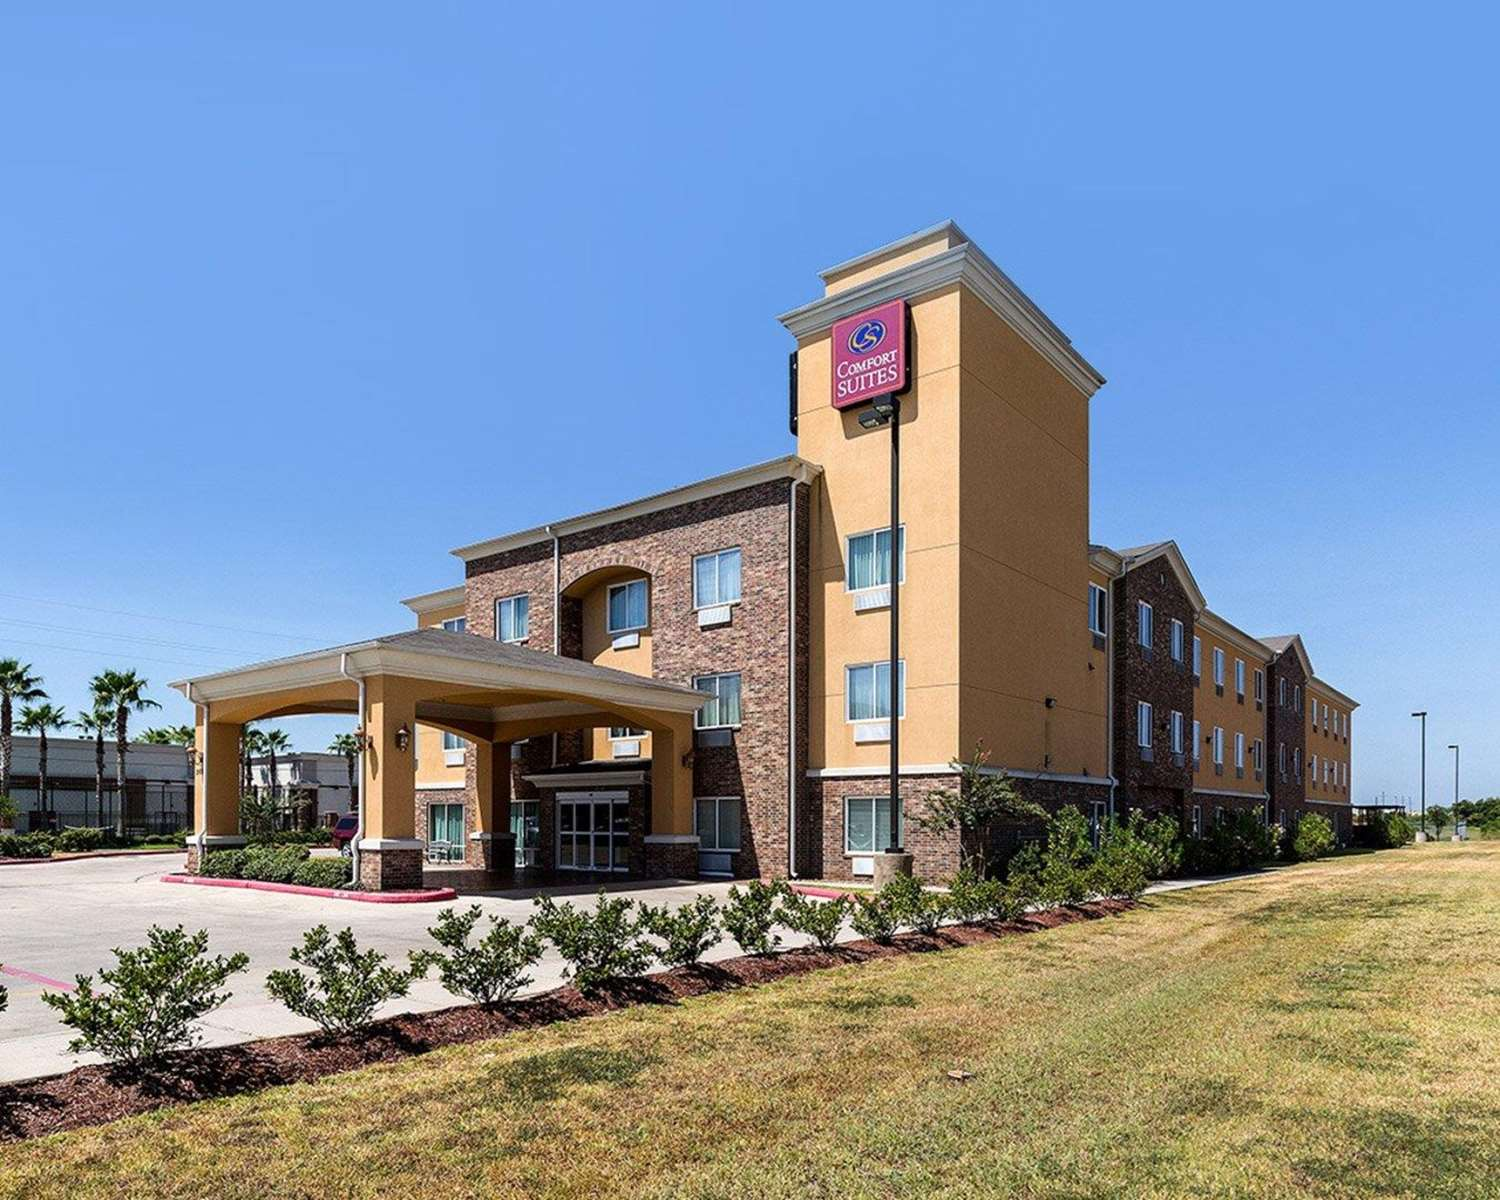 Comfort Suites Pearland, TX - See Discounts